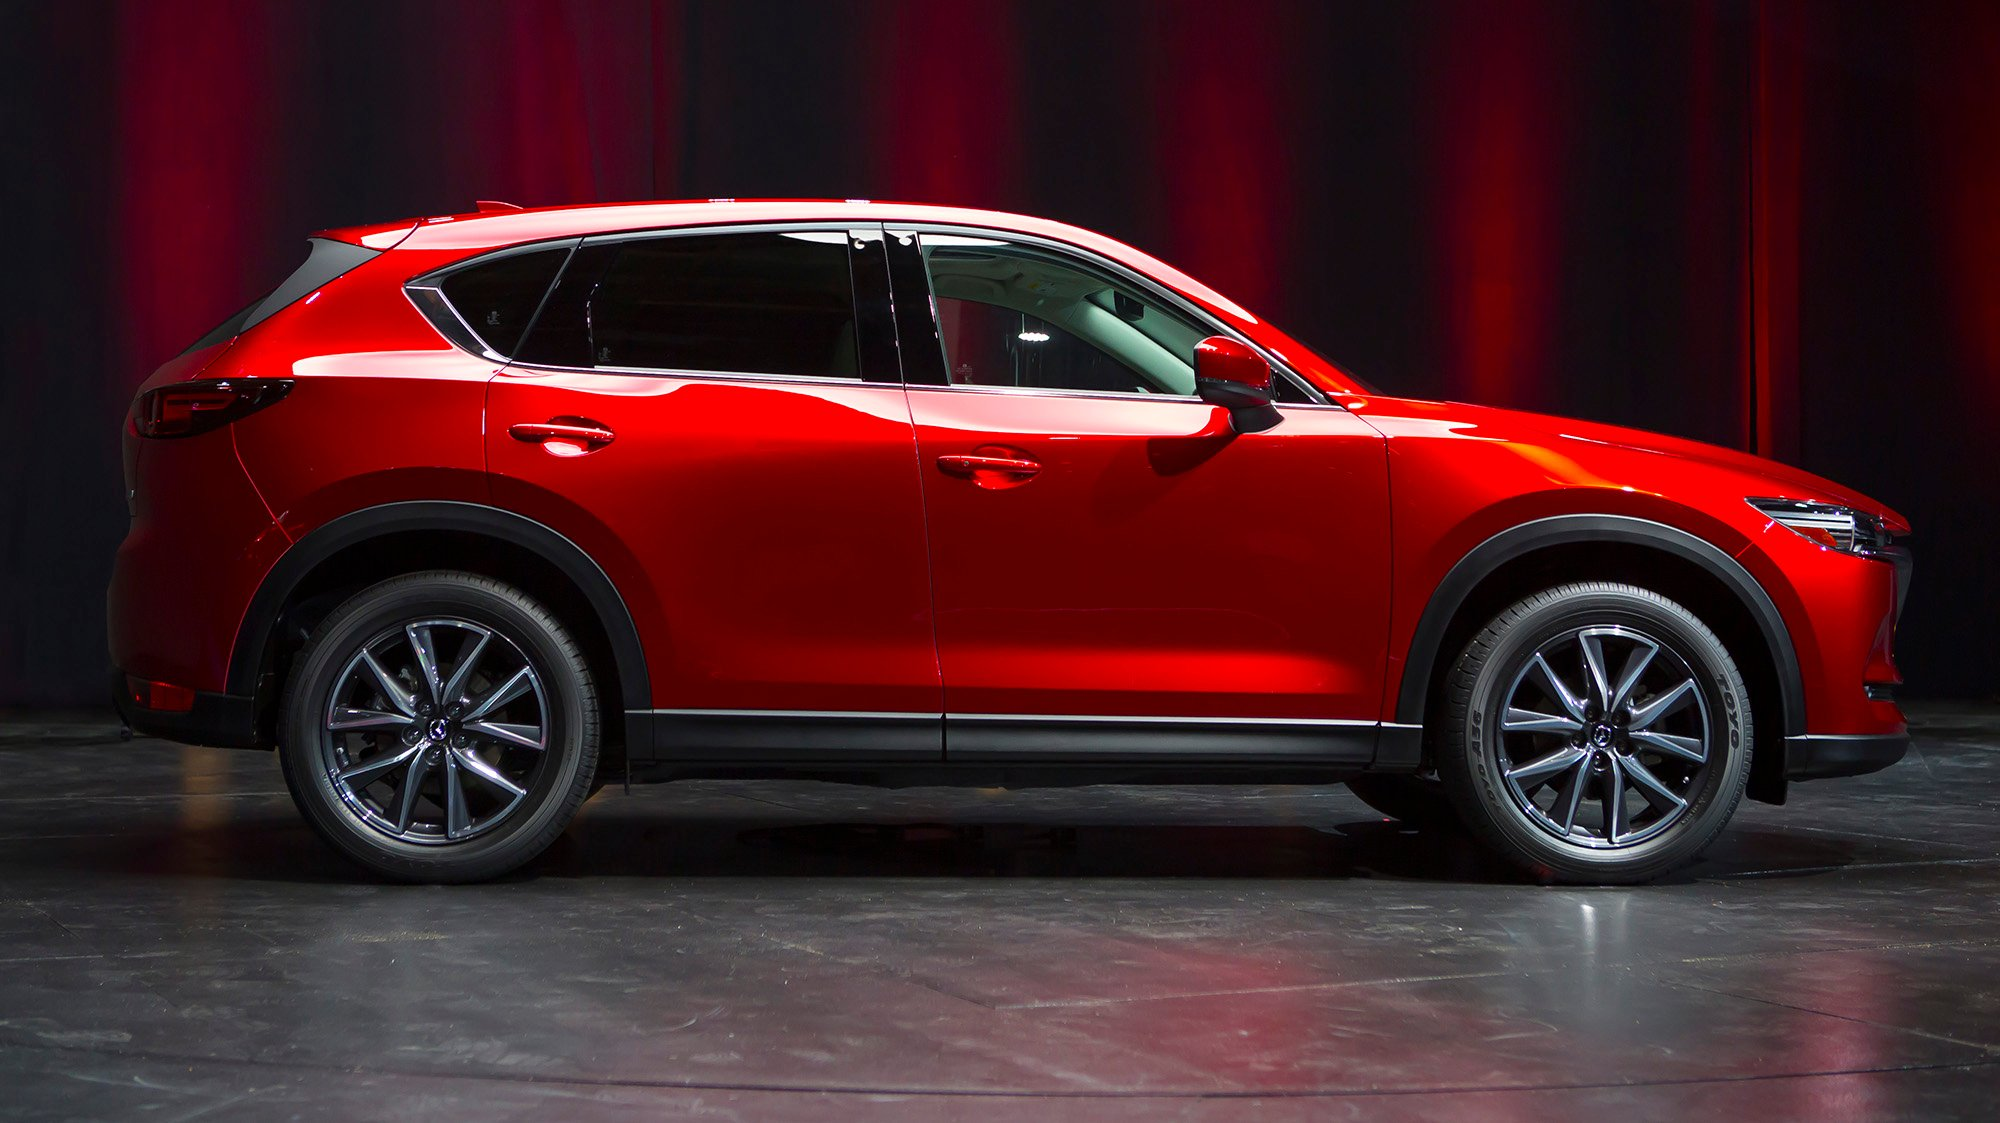 New Mazda 6 2019 >> 2017 Mazda CX-5 unveiled in LA - photos | CarAdvice